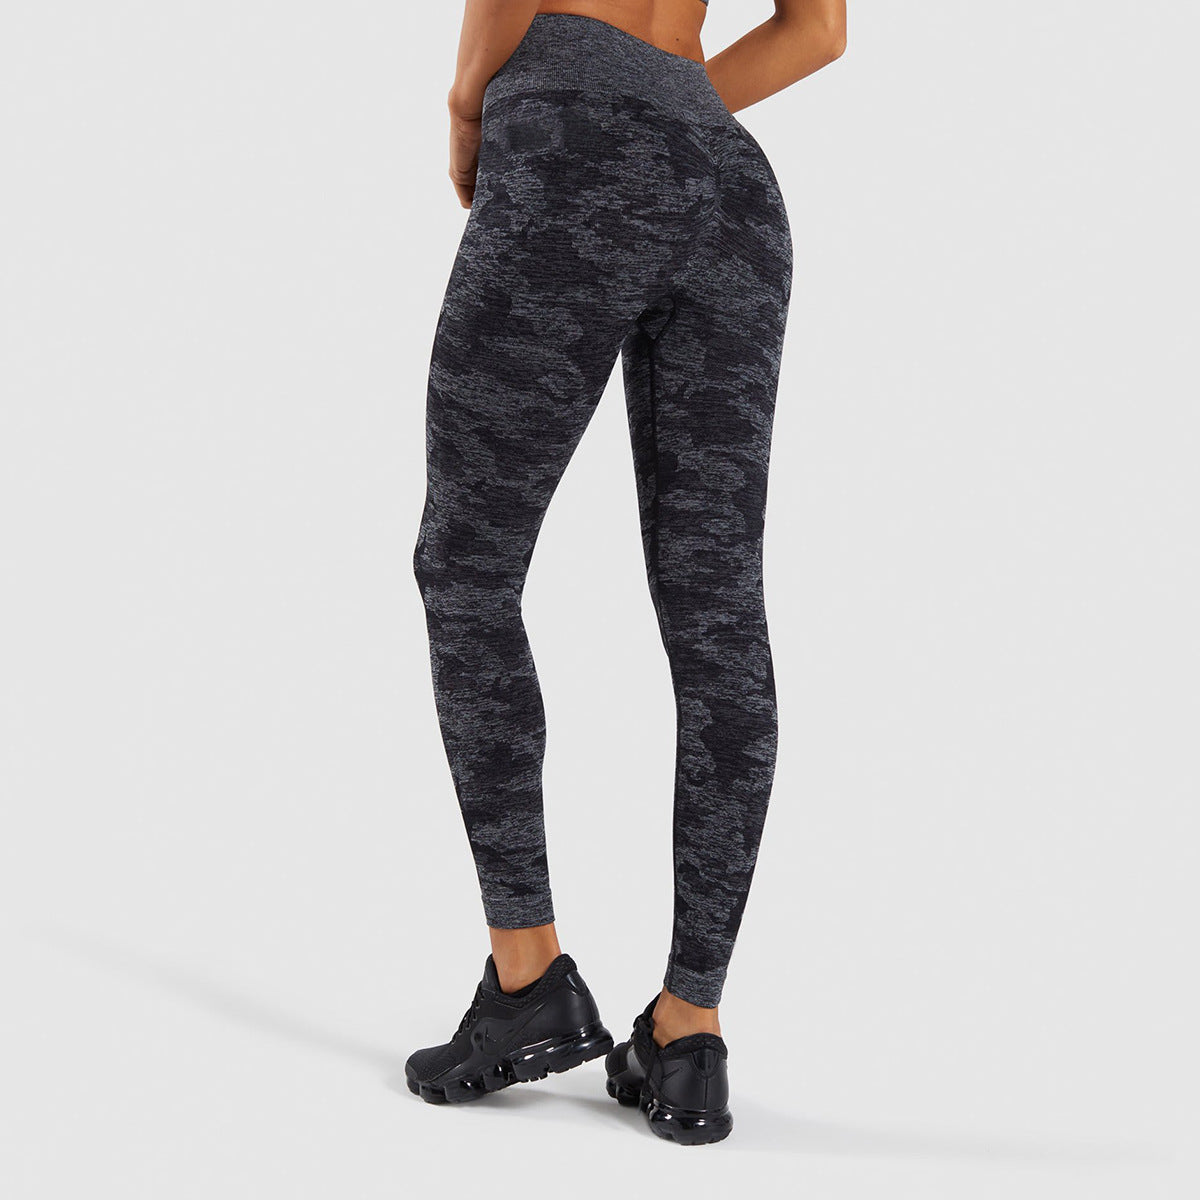 Seamless Quick Drying Yoga Pants